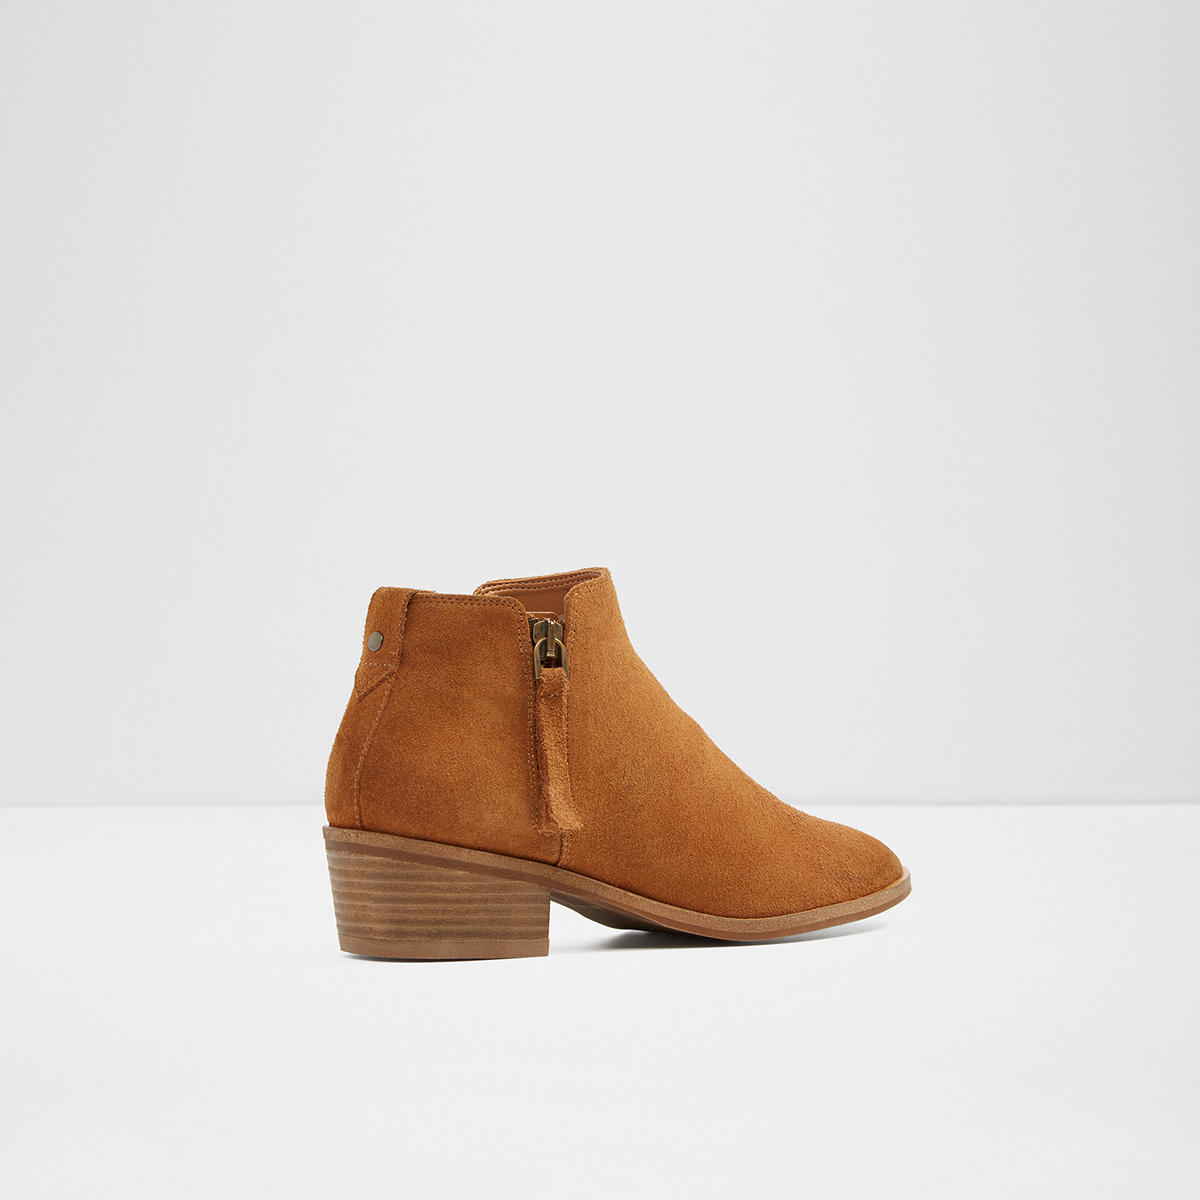 8528ae22870f Veradia Brown Suede Women s Boots